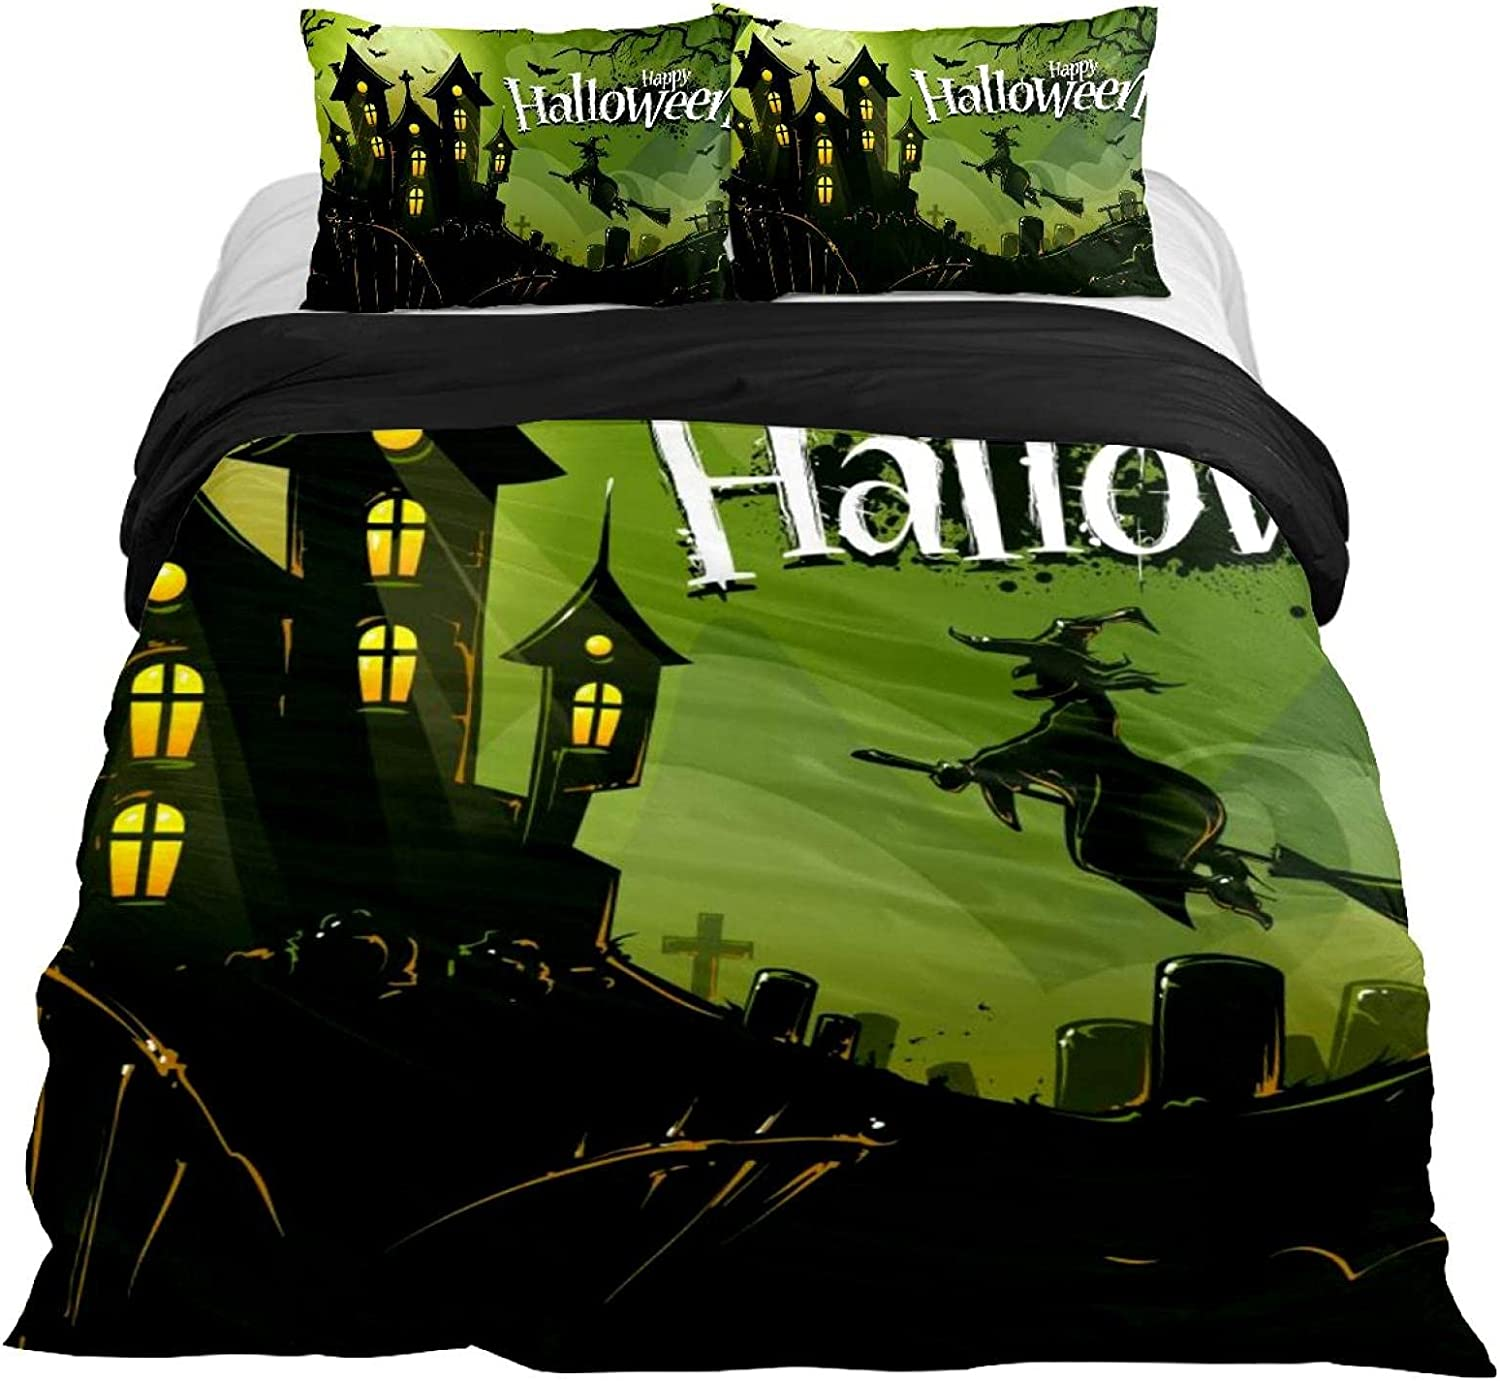 Genuine Free Shipping Dragon Sword 3PCS Bed Online limited product Sheet Set Halloween Witch Flying to Castle